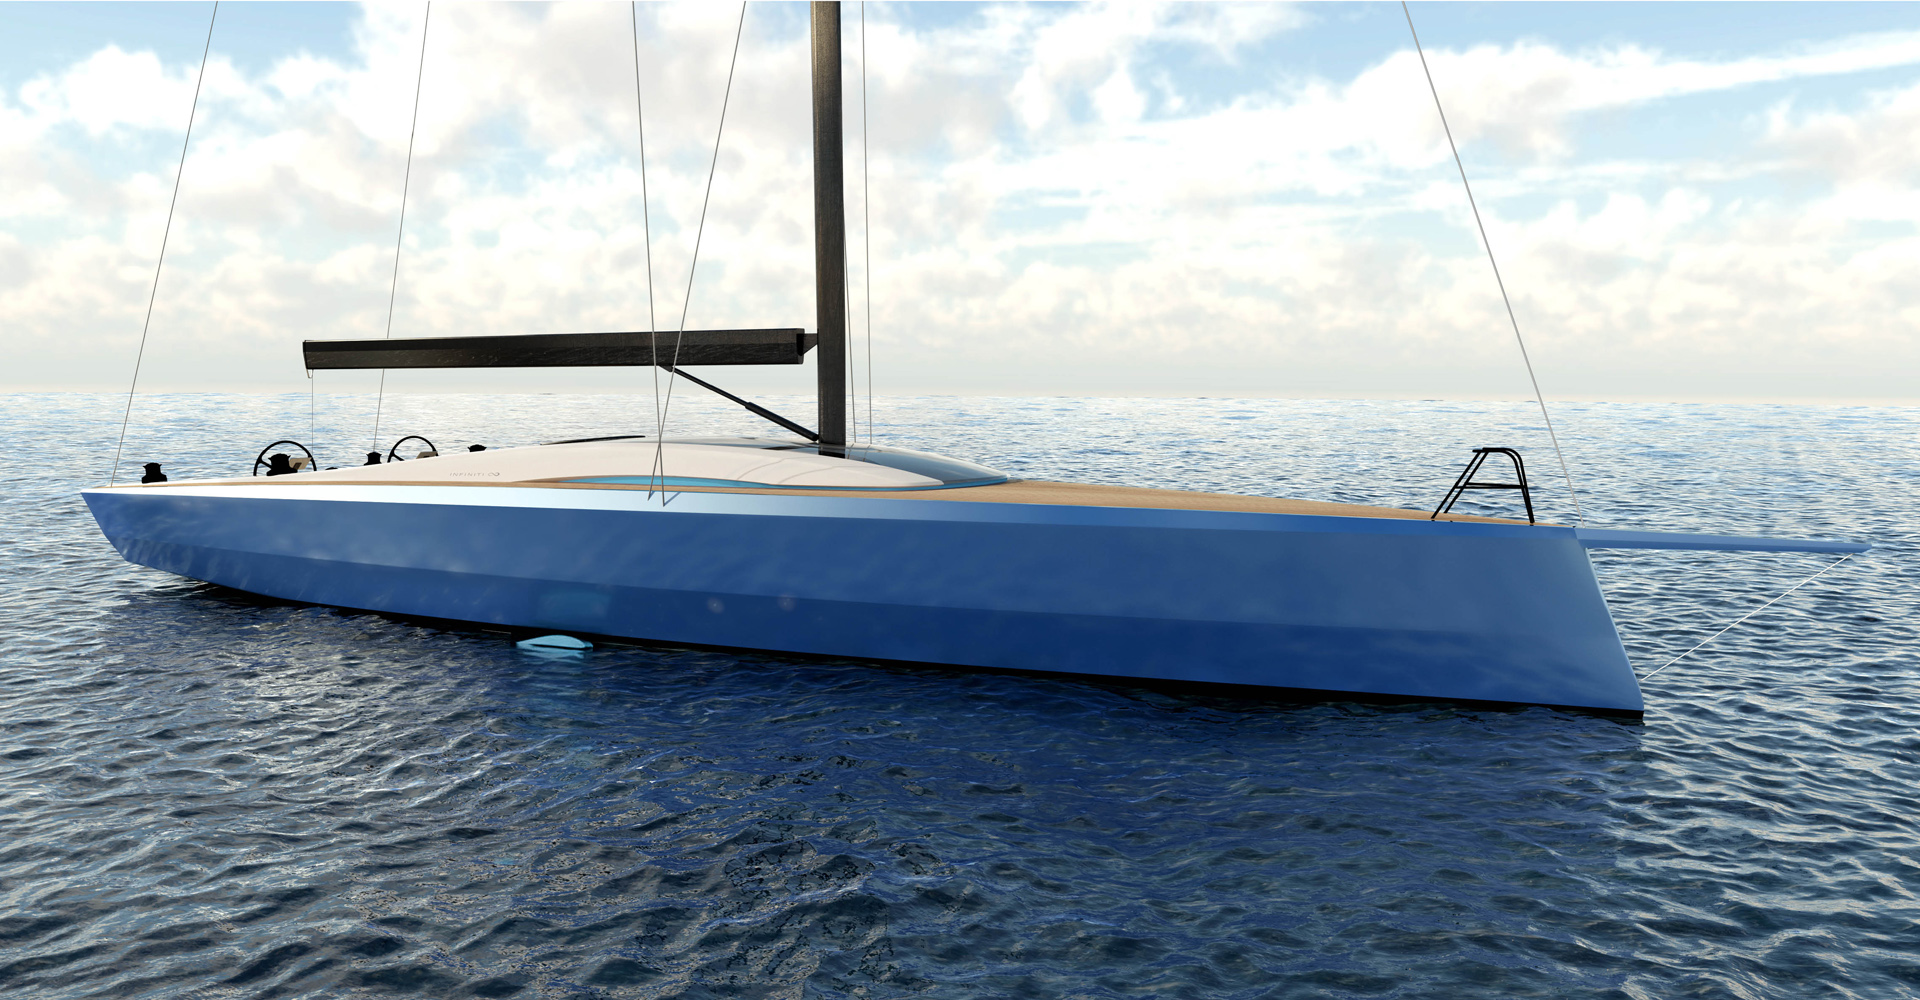 Exterior render of the Infiniti 60 sailing yacht with DSS foil